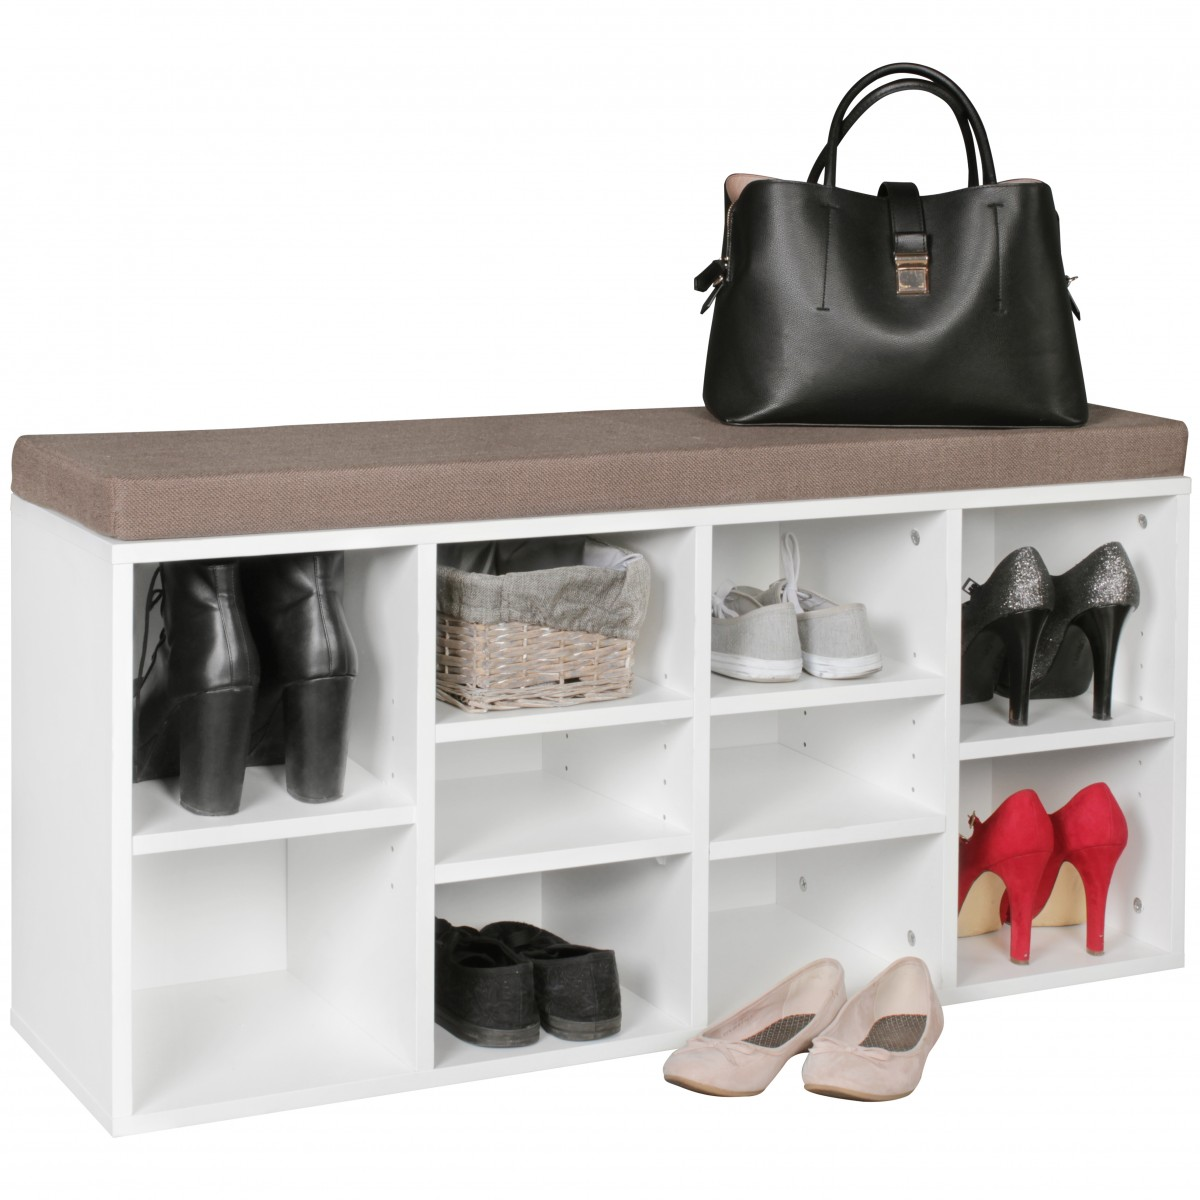 weie schuhbank fantastisch ikea kchenplatte with weie schuhbank beautiful multiforma ii with. Black Bedroom Furniture Sets. Home Design Ideas